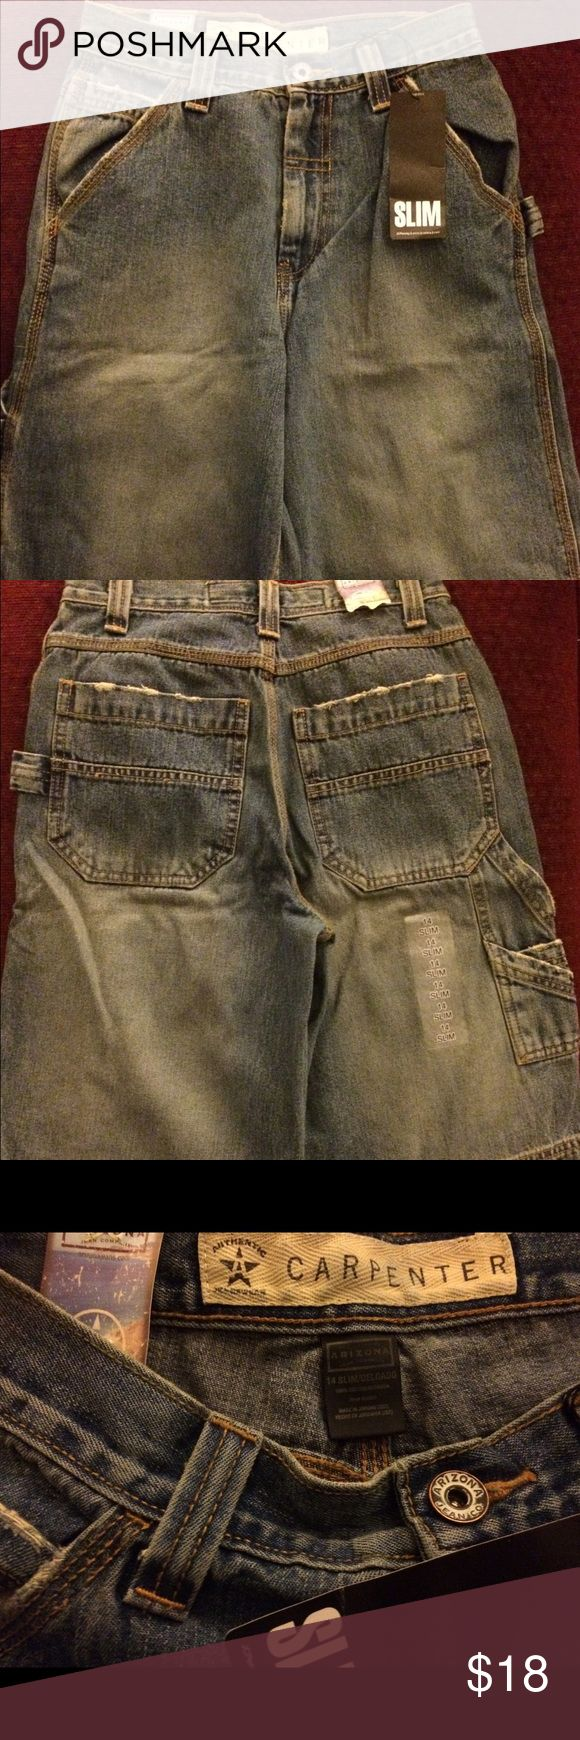 Boys Jean Shorts Denim Shorts NEW with tags! Questions! Please ask!!! Arizona Jean Company Bottoms Shorts